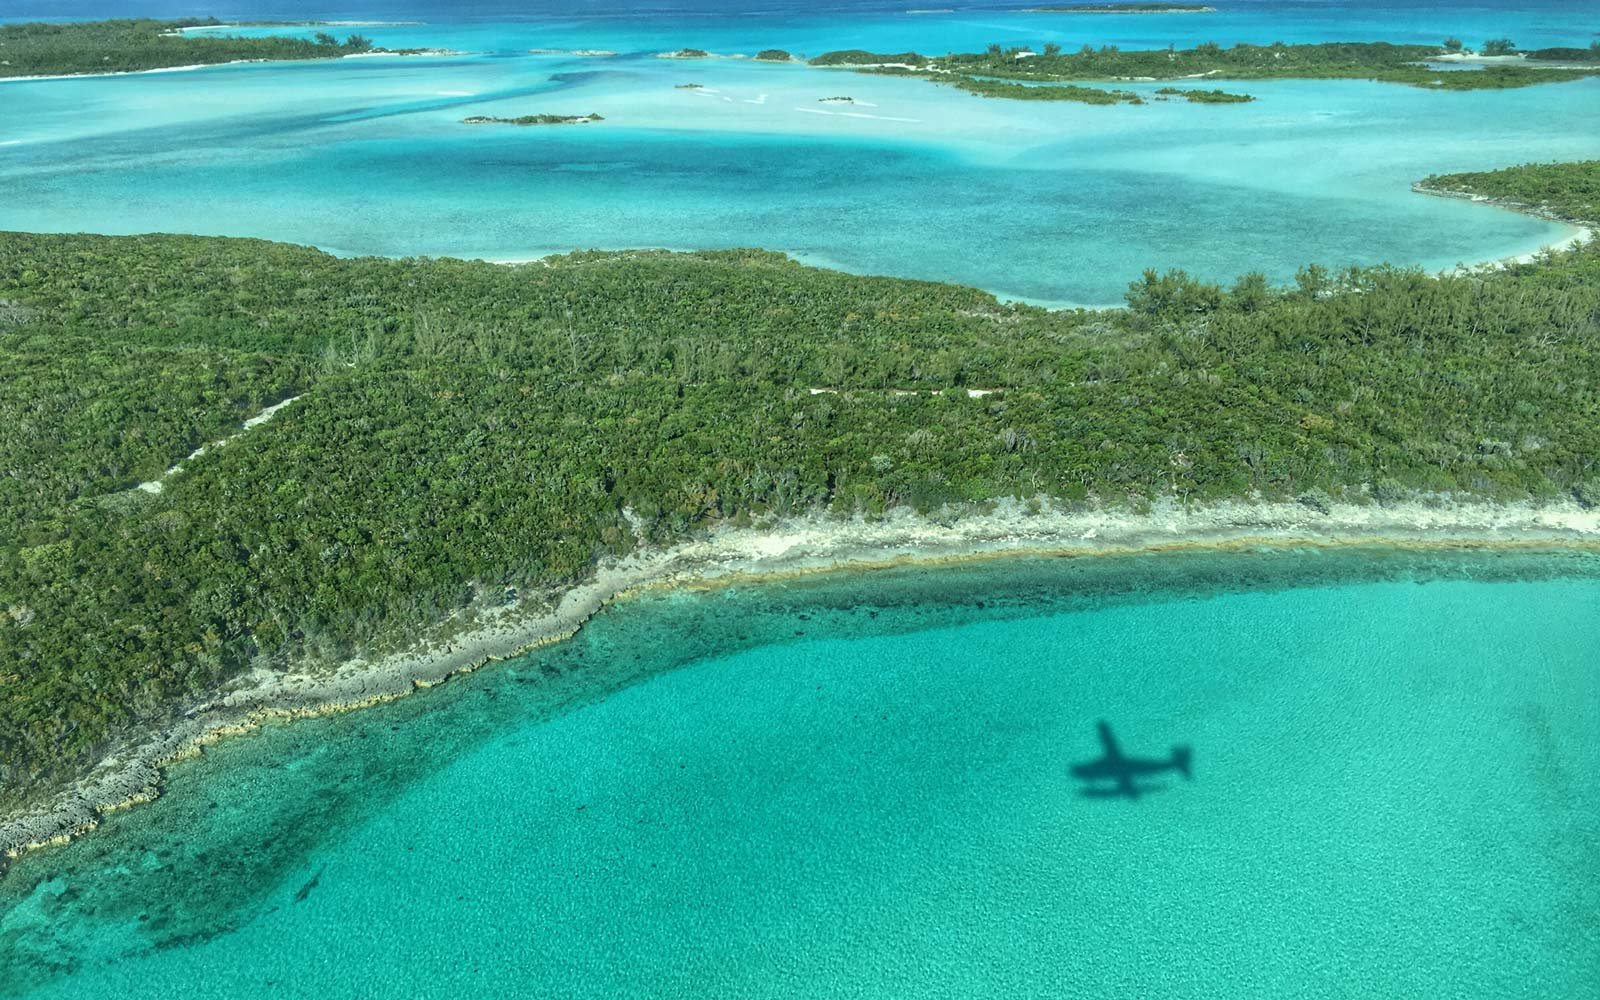 Aerial View of the Exumas